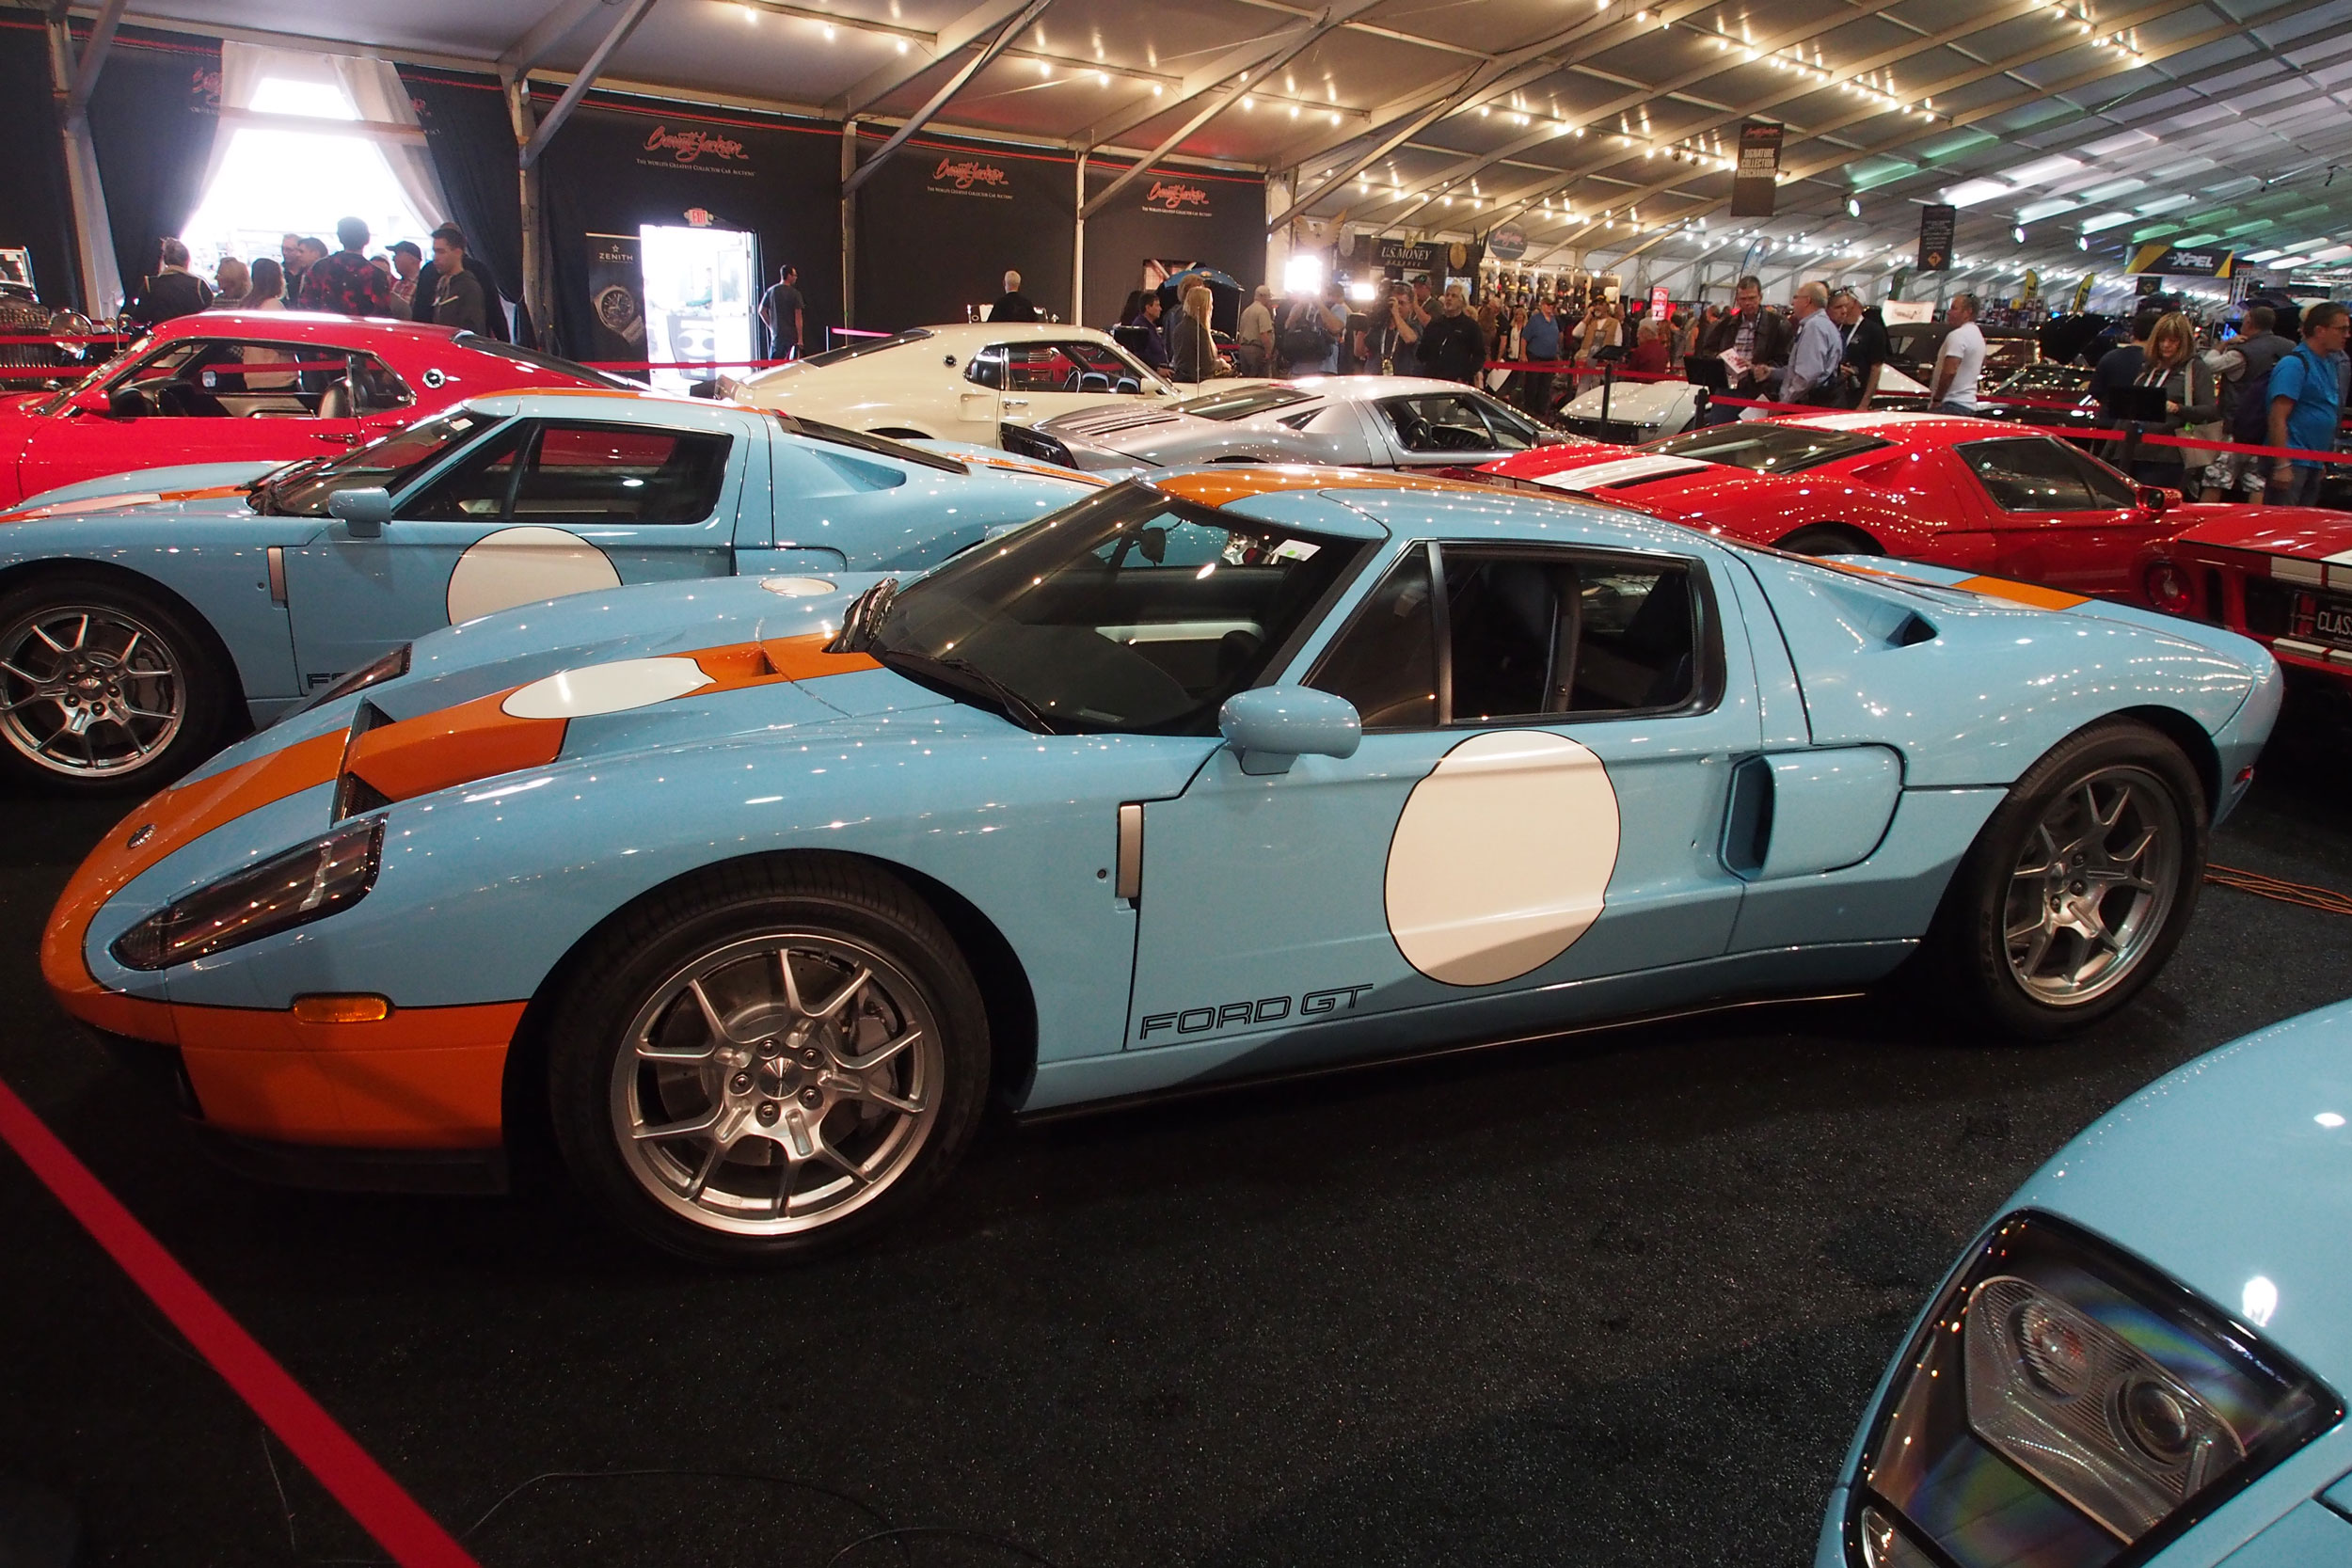 2006 Ford GT Heritage Edition at Barrett-Jackson